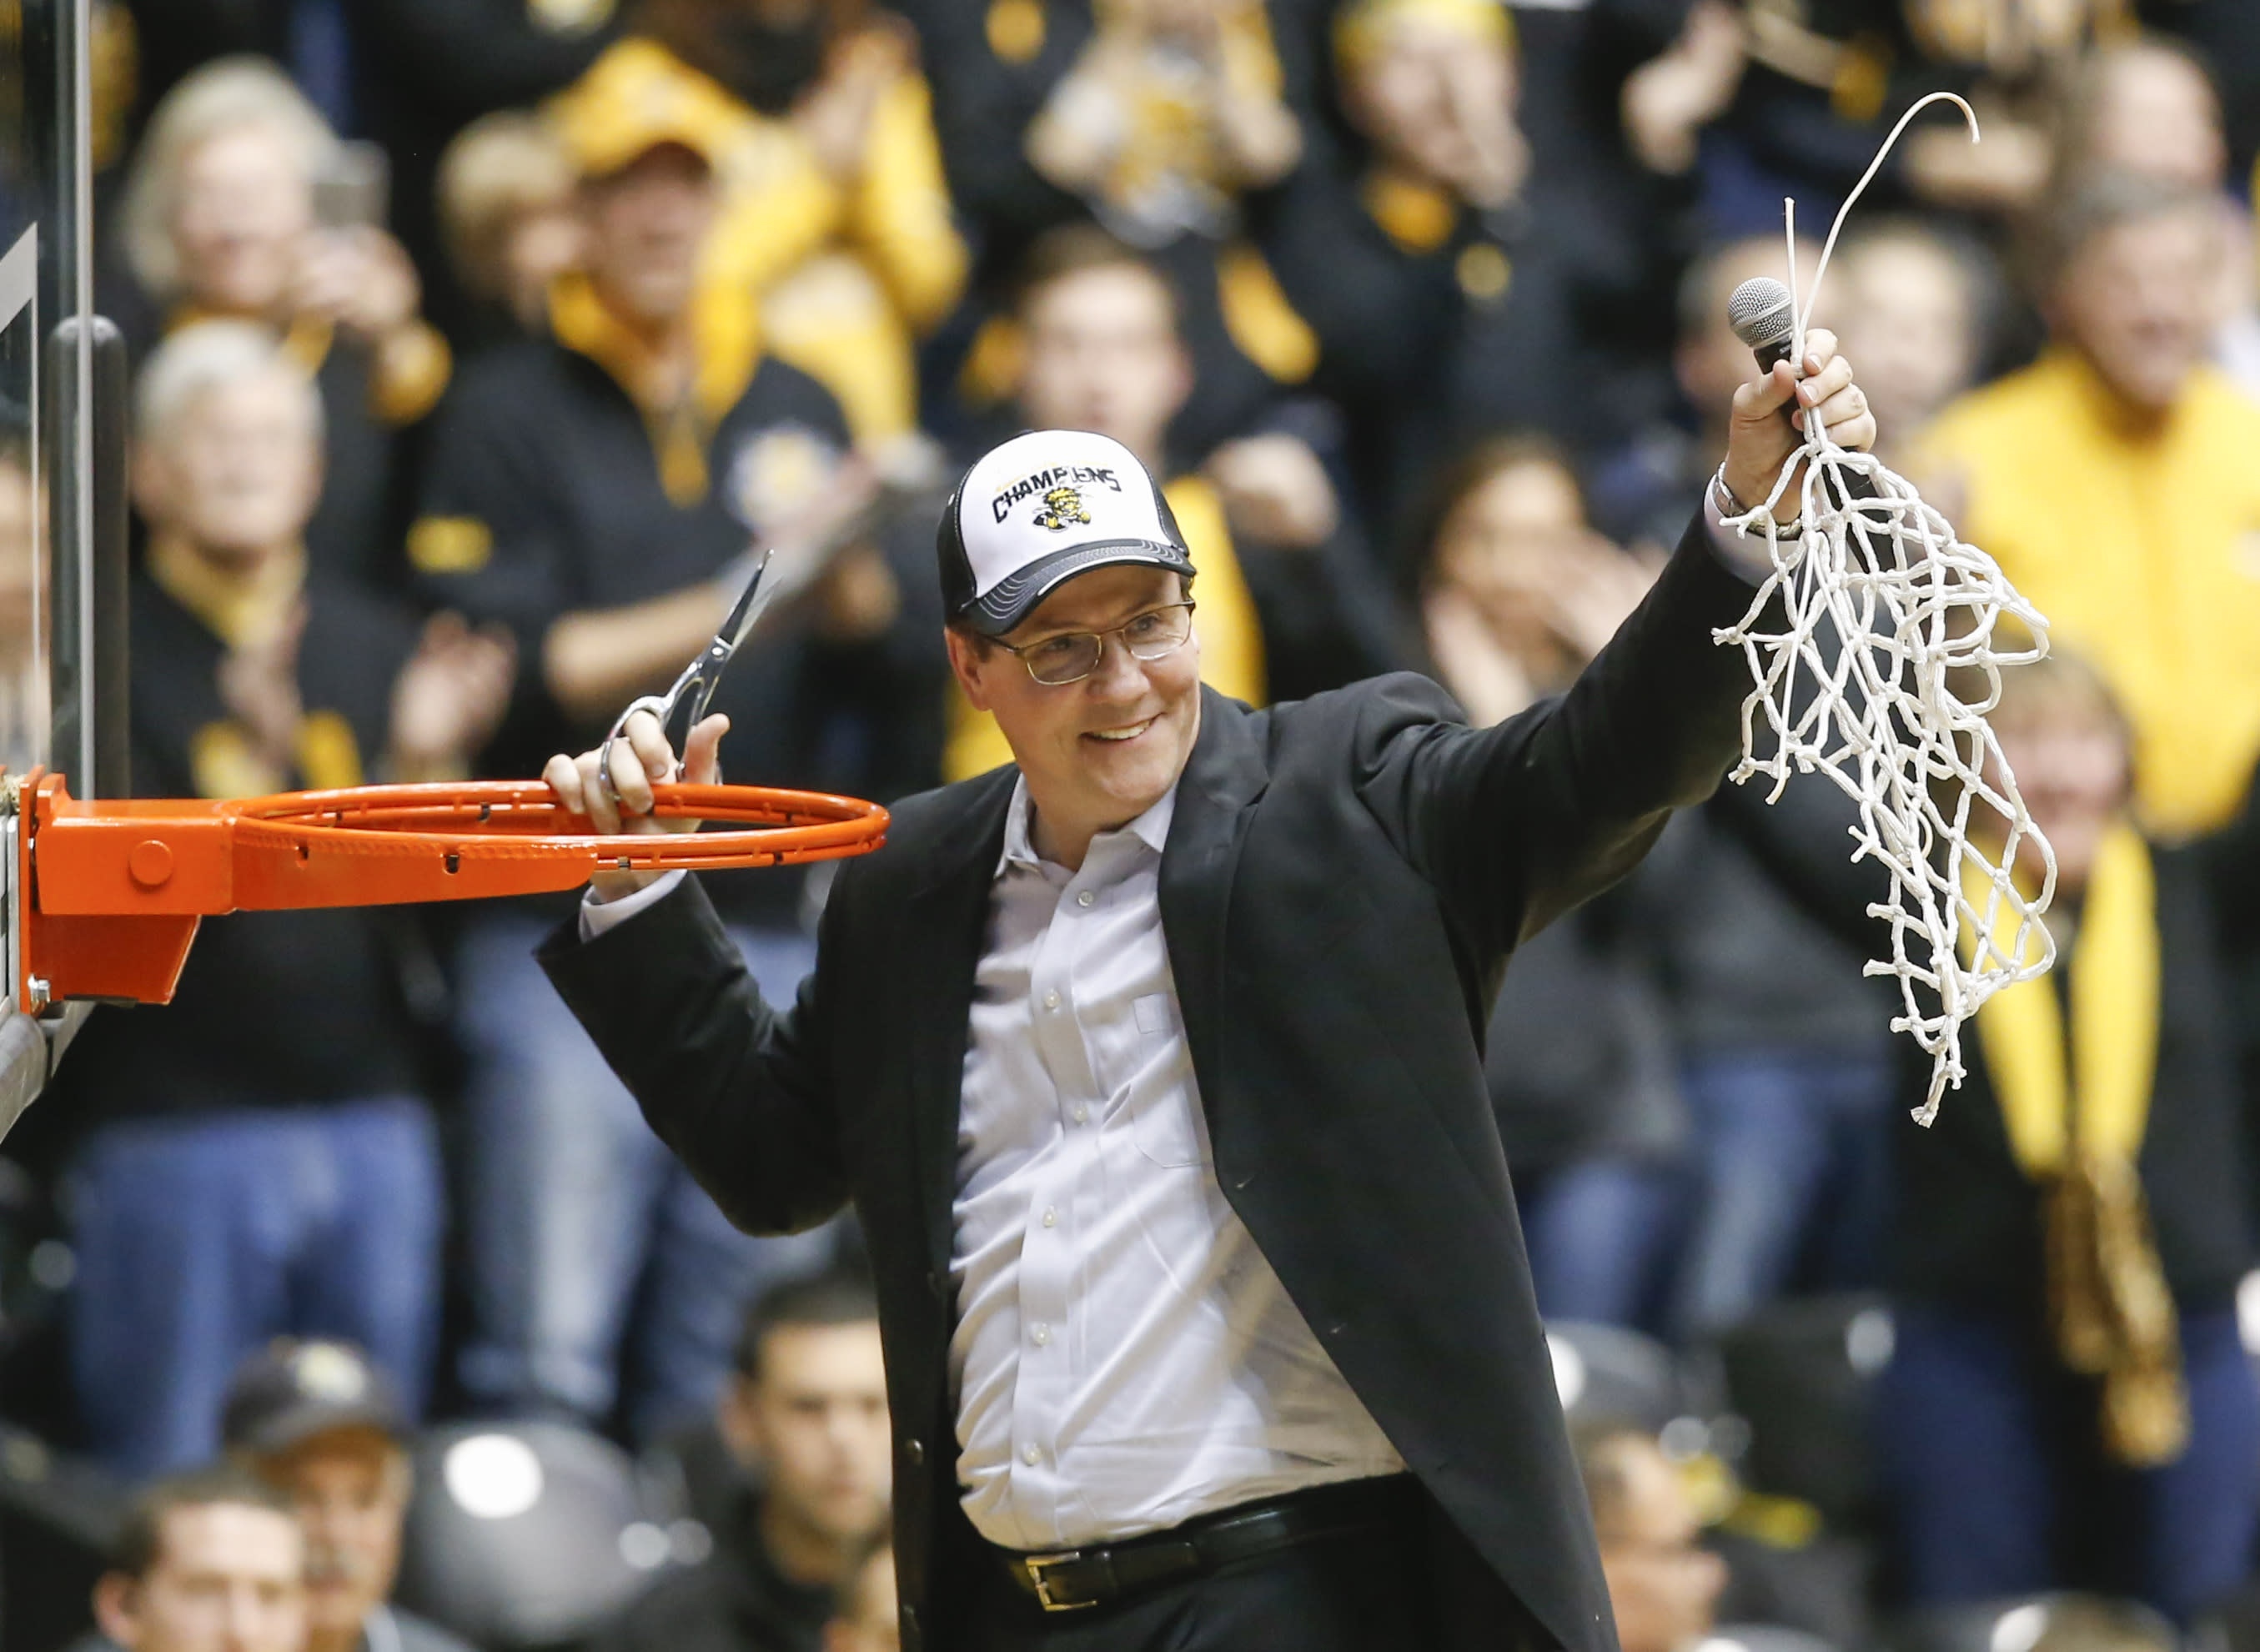 Wichita St beats Northern Iowa to win Missouri Valley title